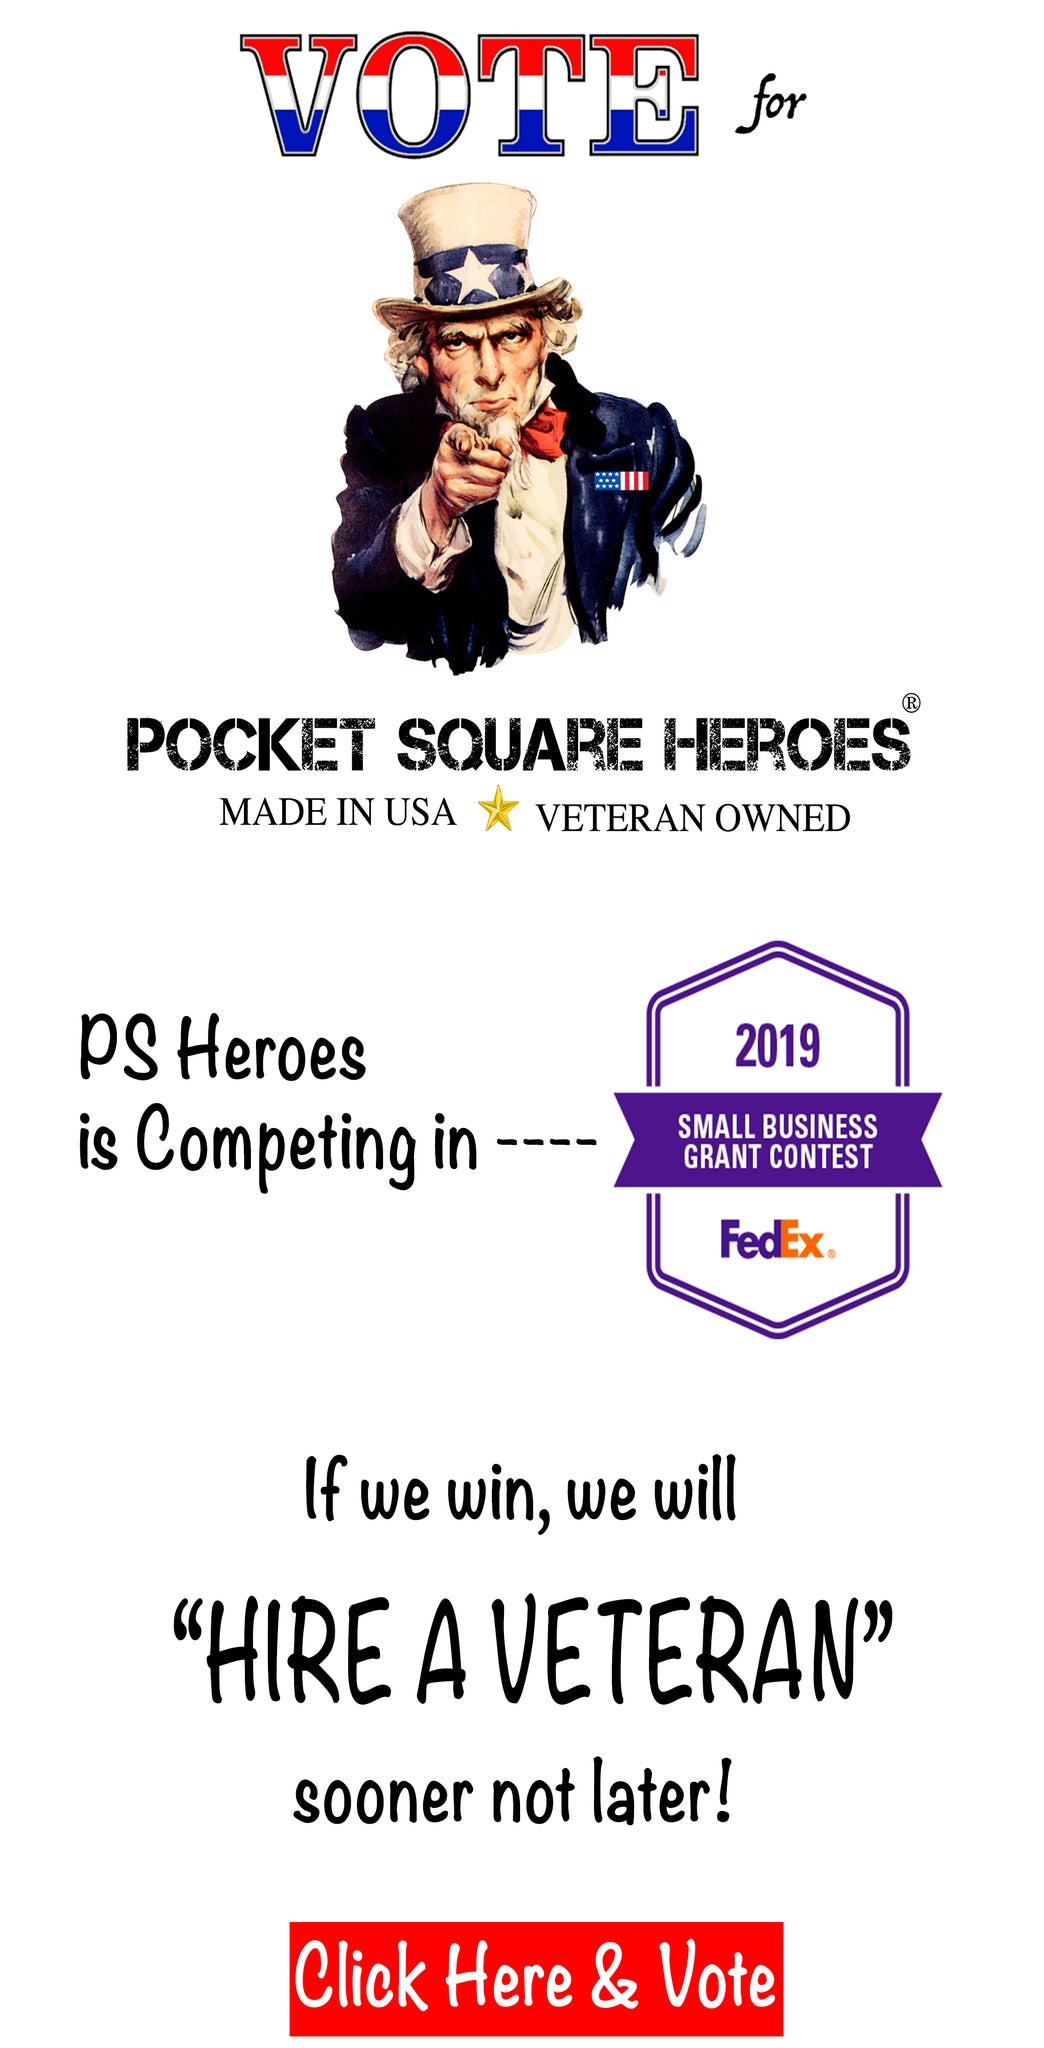 2019 FedEx Small Business Grant Contest, Pocket Square Heroes